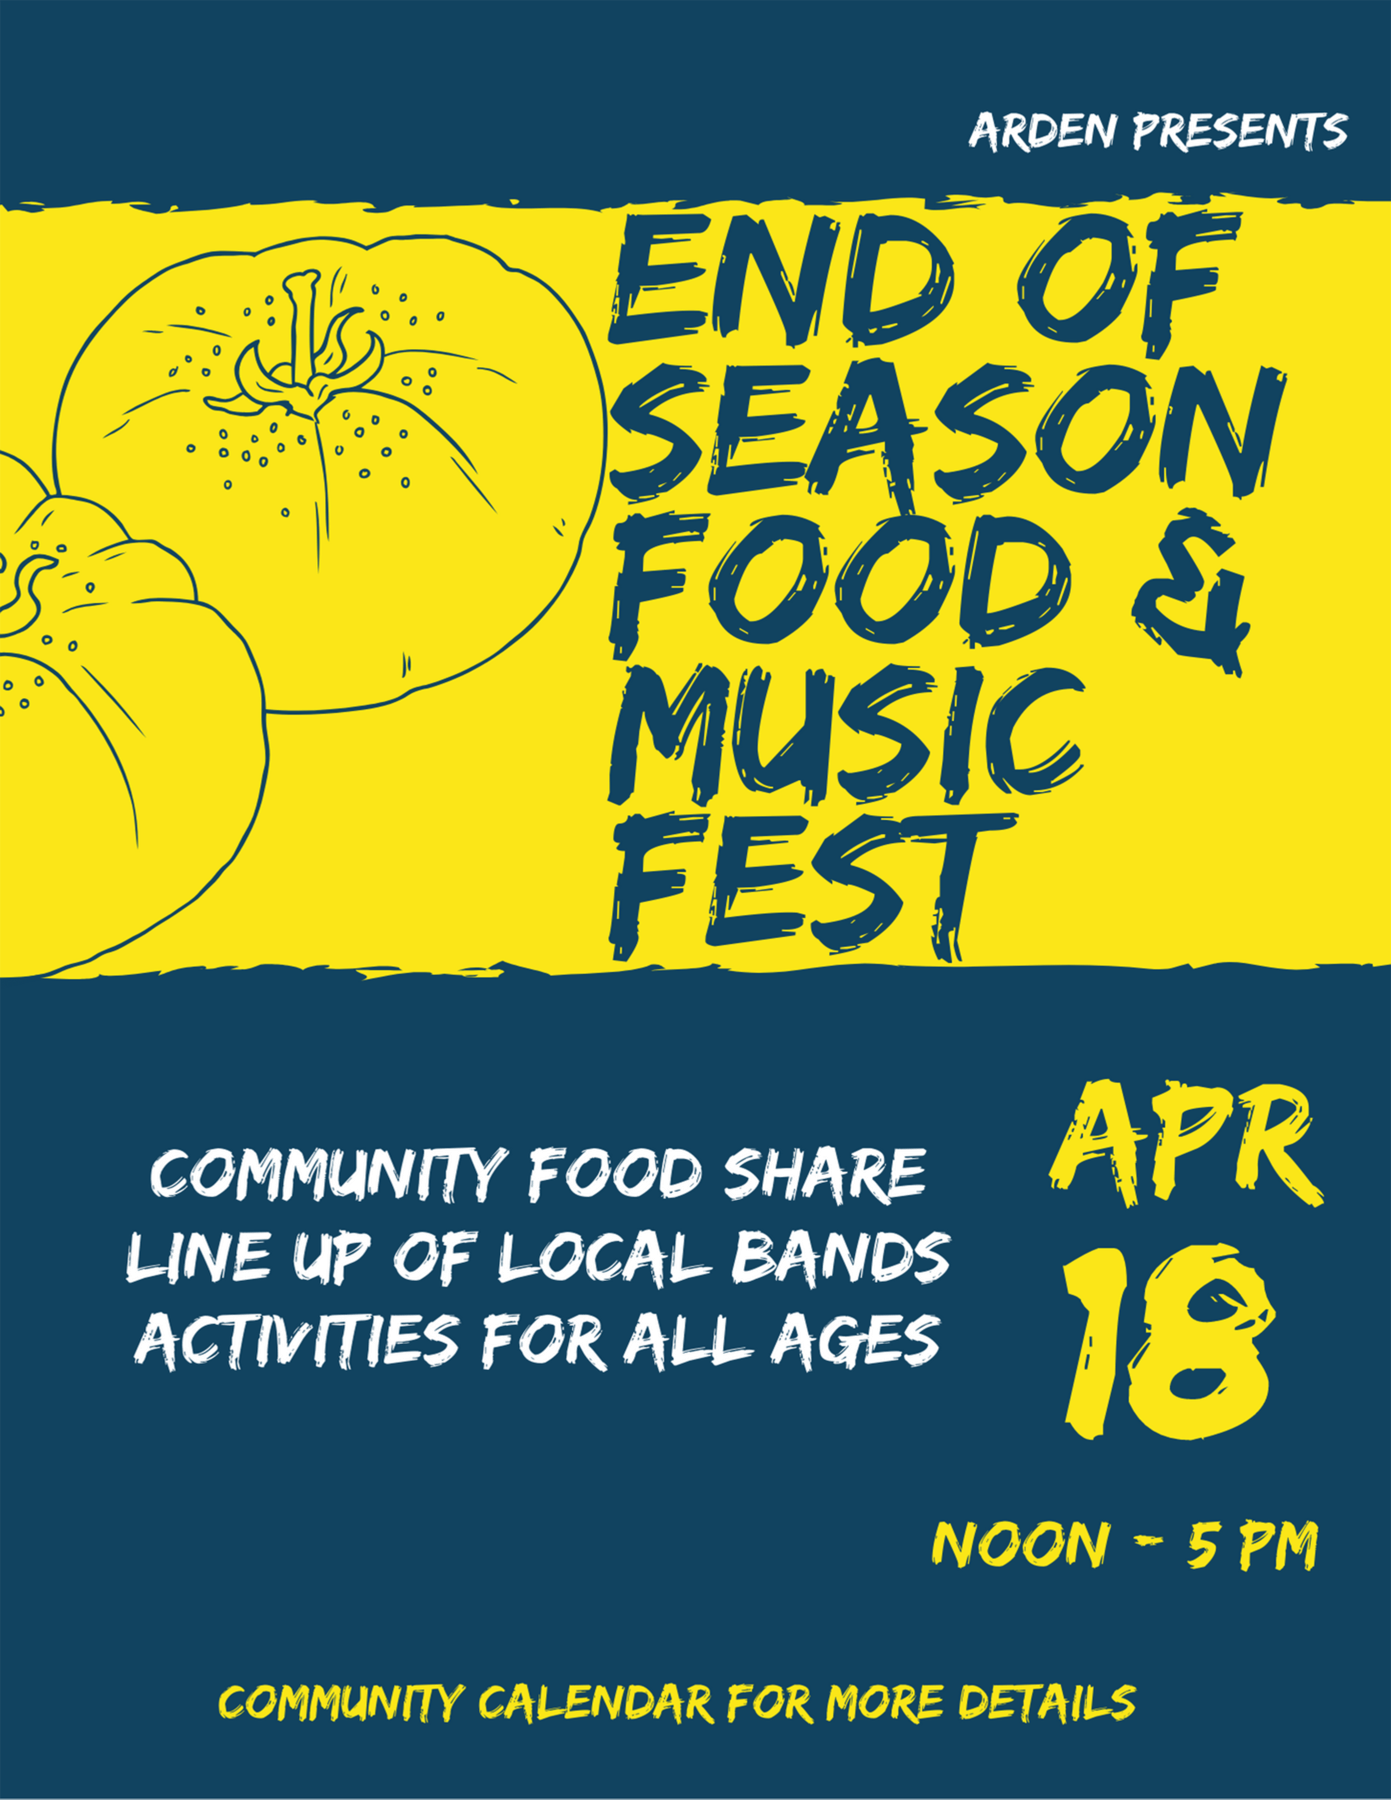 End of Season Food & Music Fest